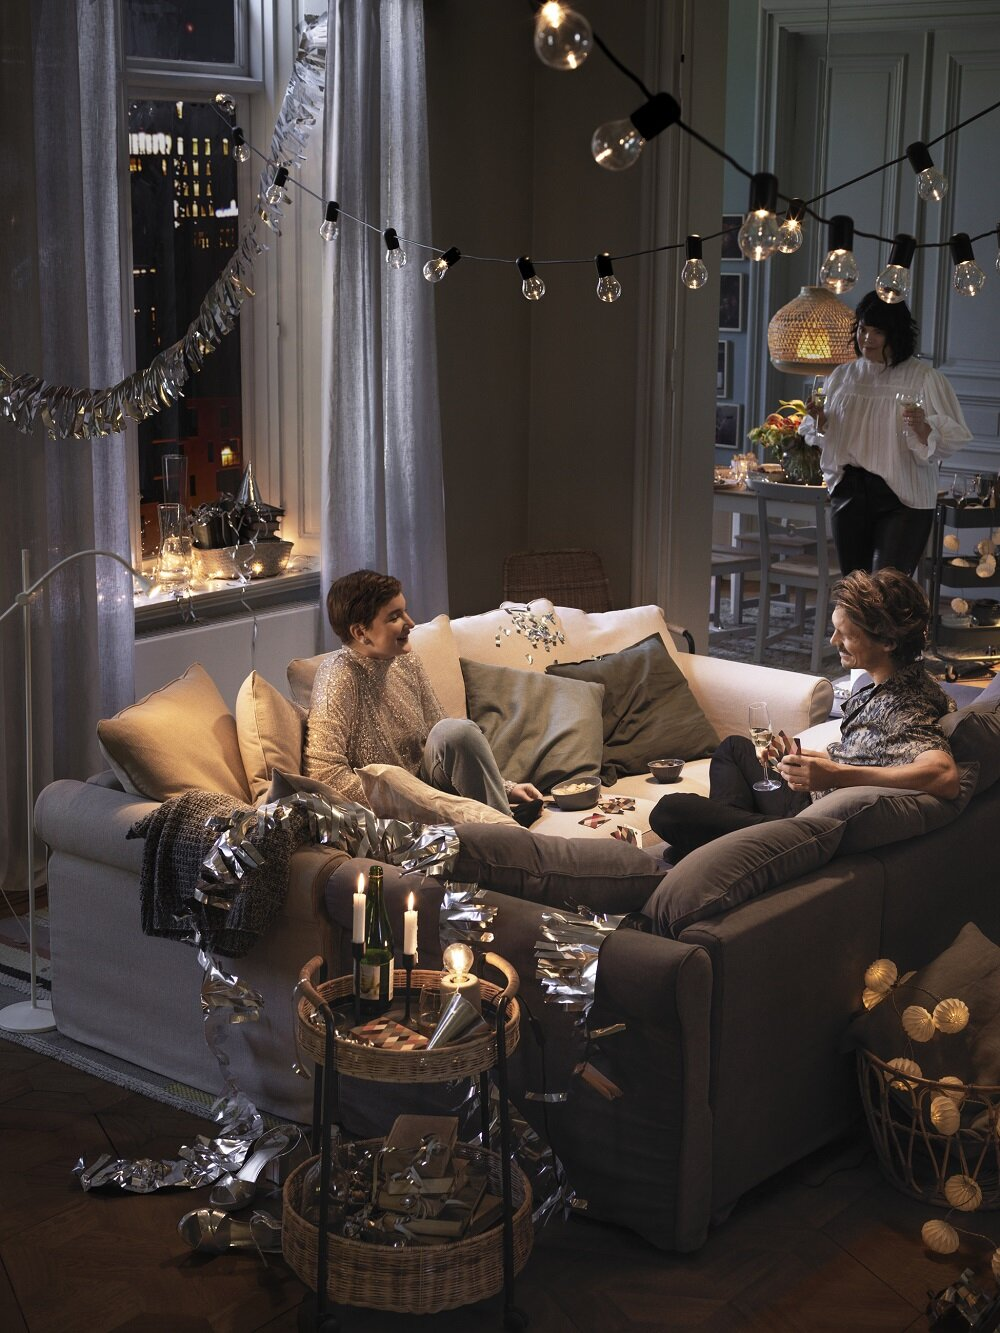 Ikea Weihnachten Ikea Christmas Collection 2020: Create Your Own Magical Moments — The Nordroom